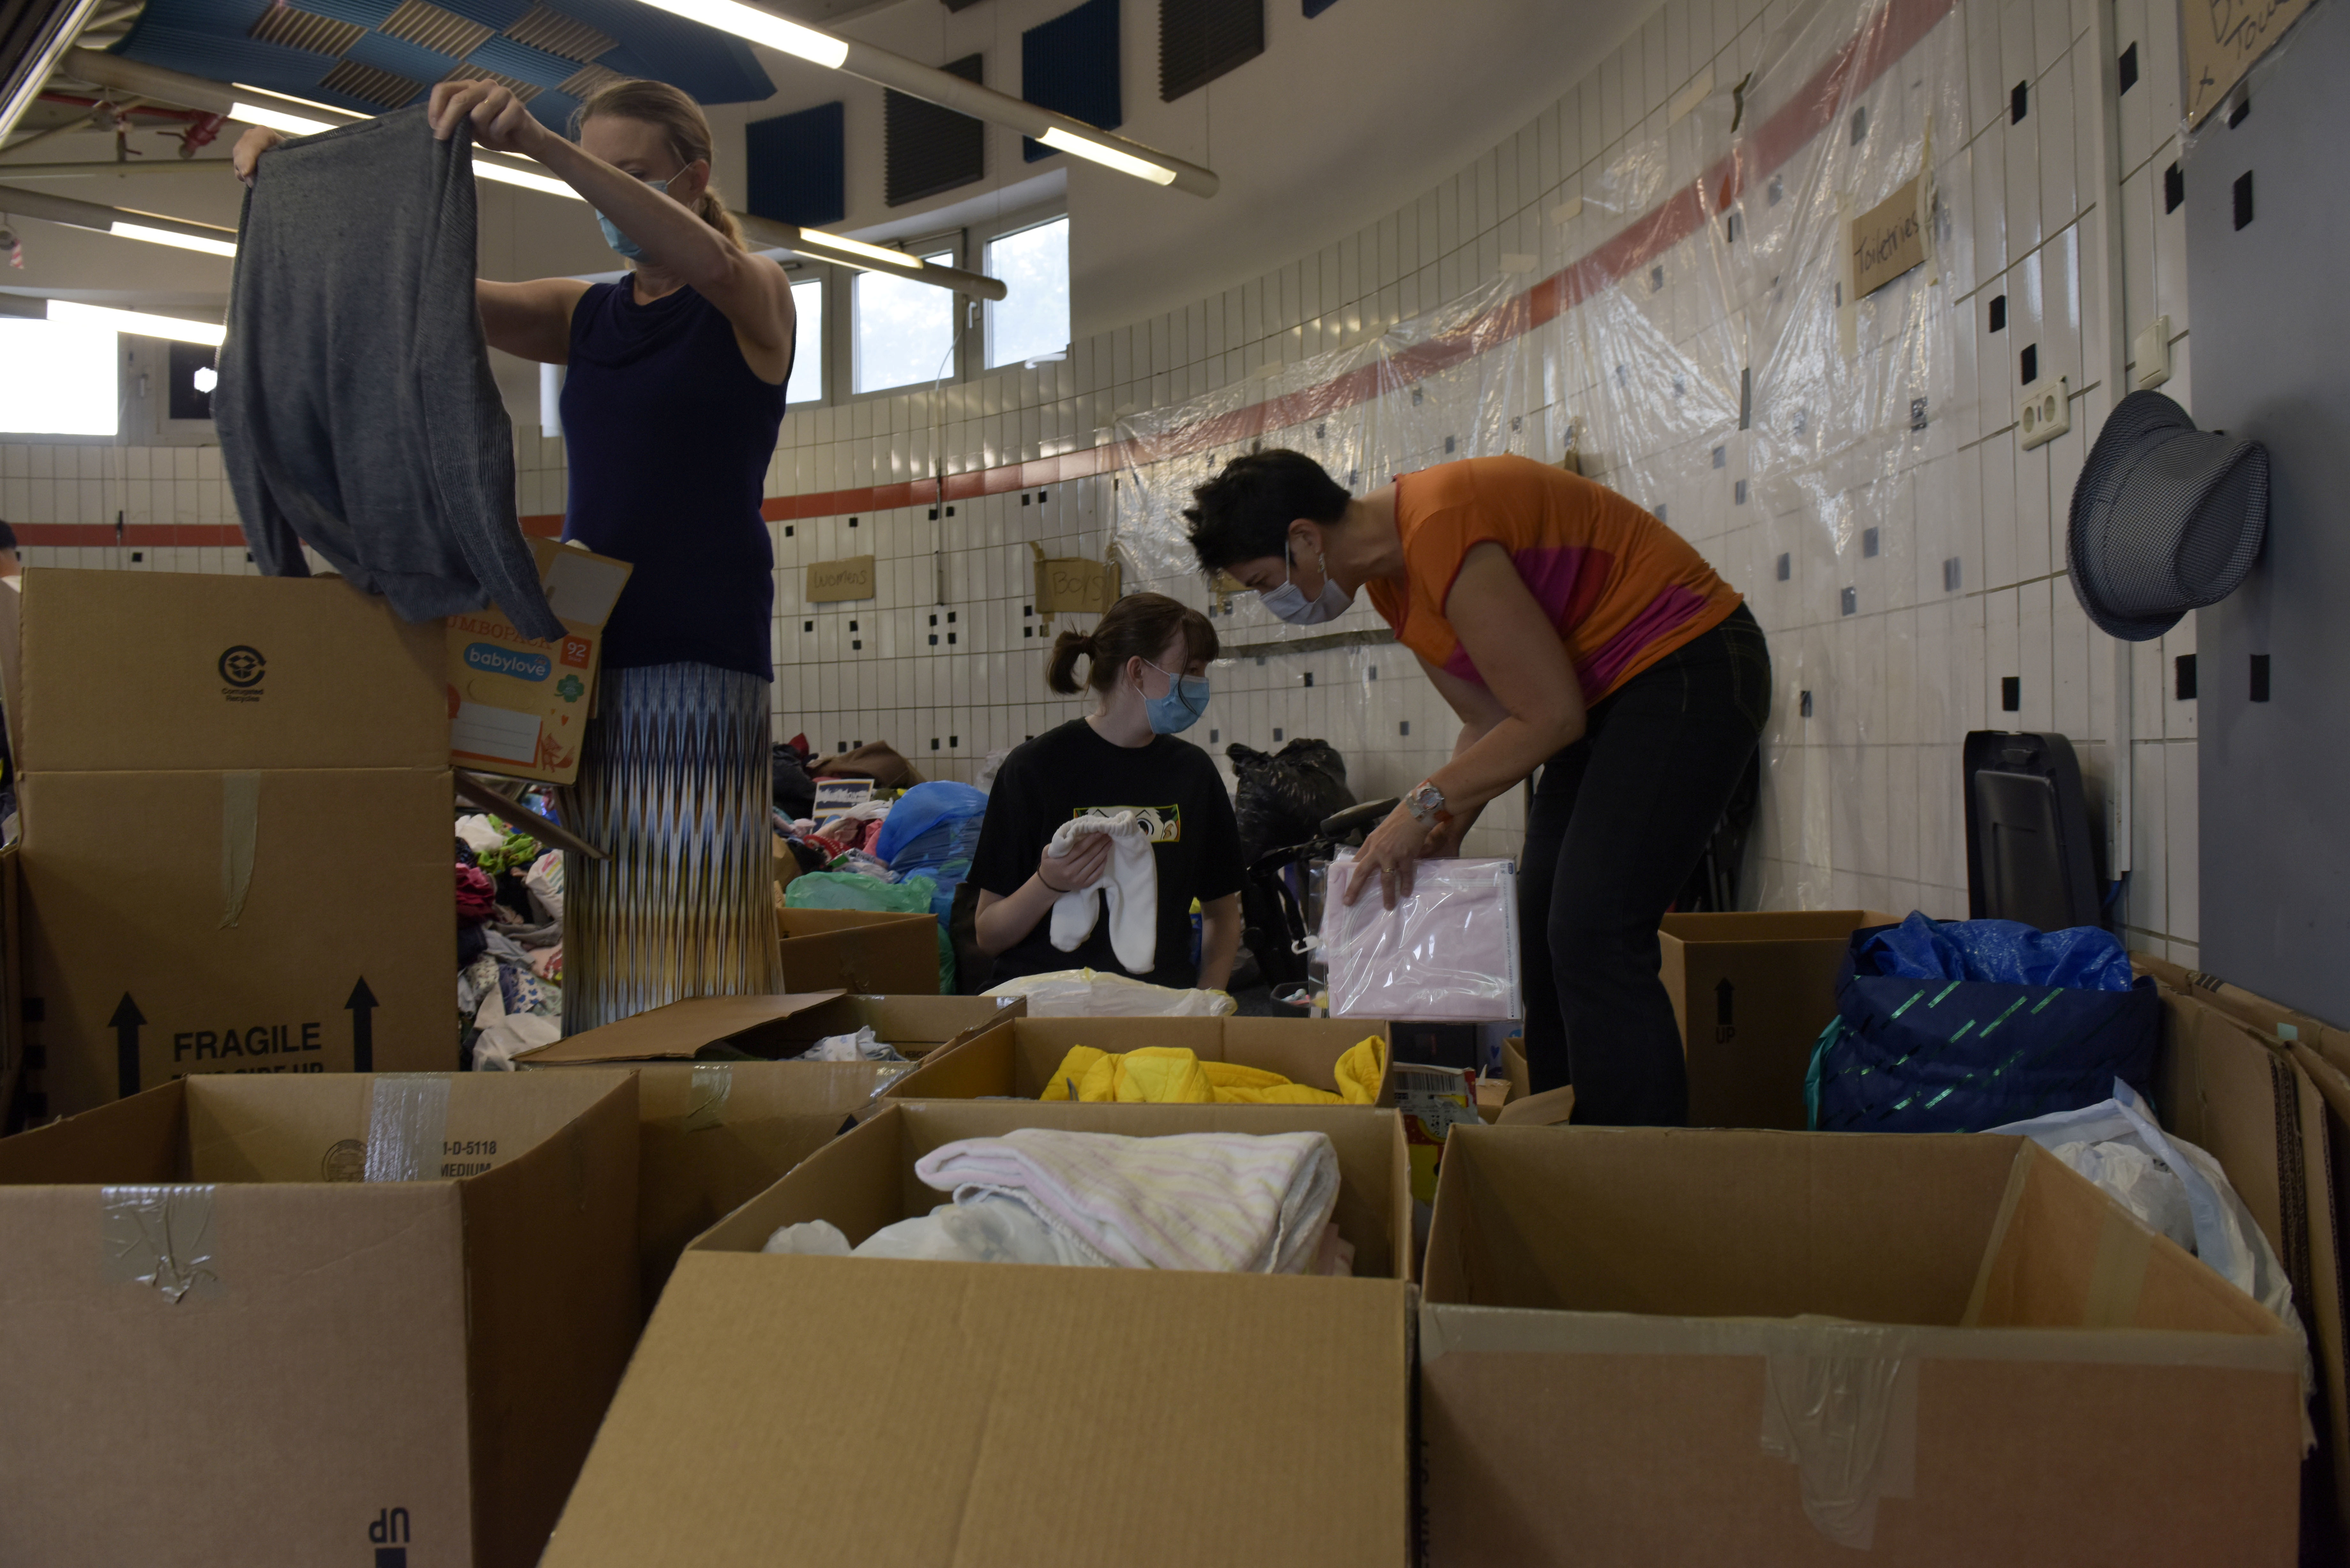 Civilian volunteers sort donations for evacuees from Afghanistan at Ramstein Air Base, Germany, August 22, 2021. Airman 1st Class Madelyn Keech/U.S. Air Force/Handout via REUTERS